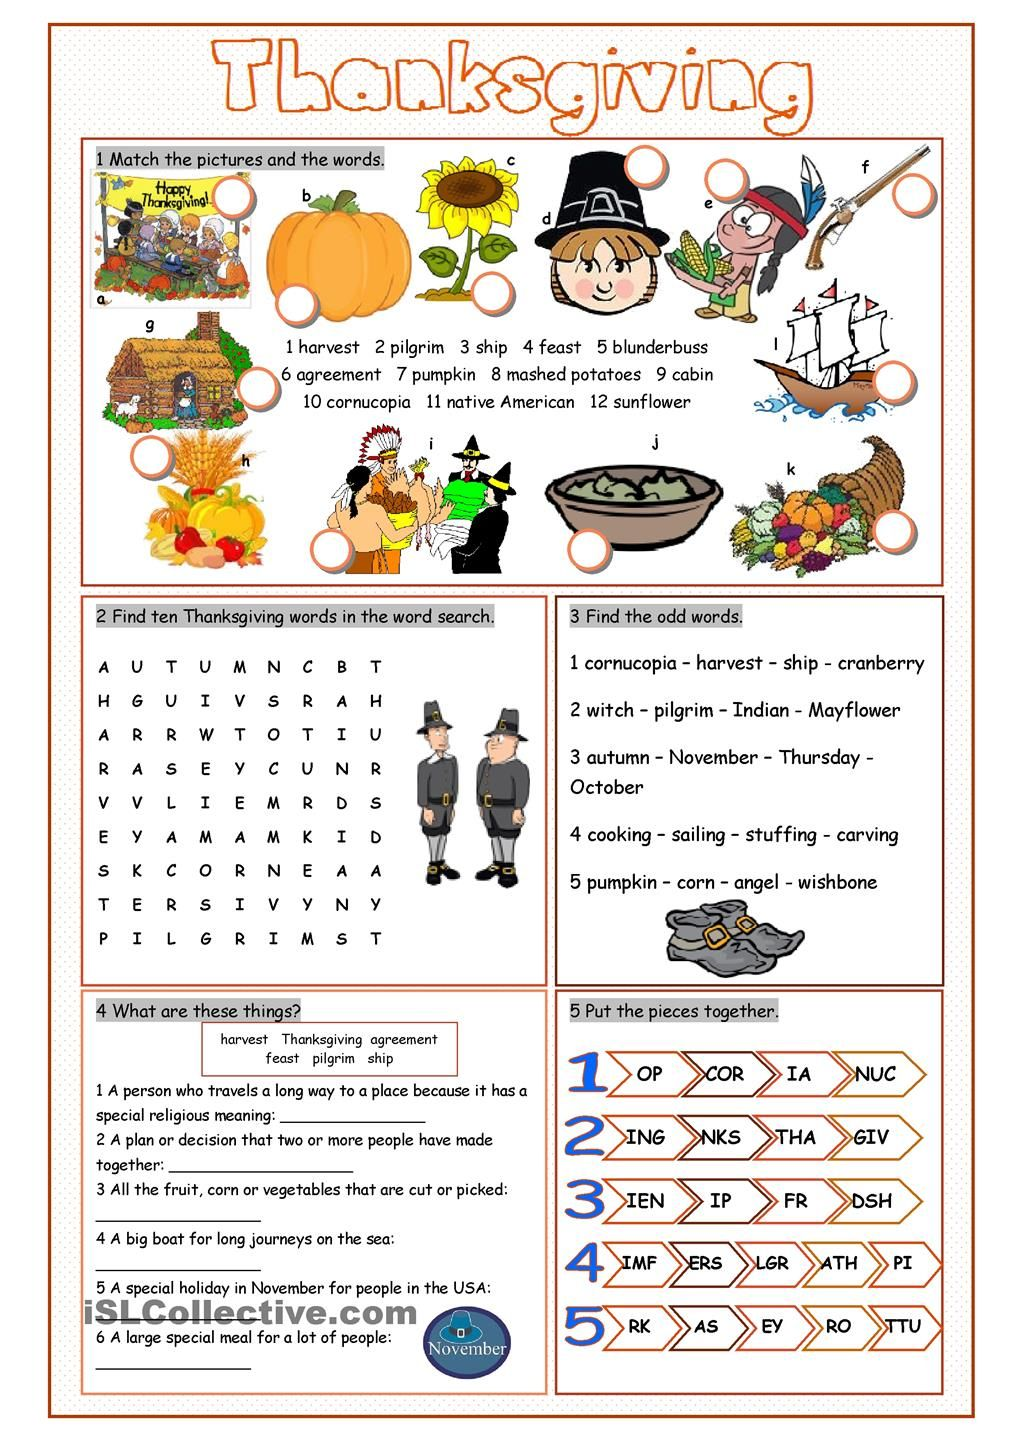 Workbooks thanksgiving worksheets for middle school : Thanksgiving Vocabulary Exercises | English worksheets | Pinterest ...